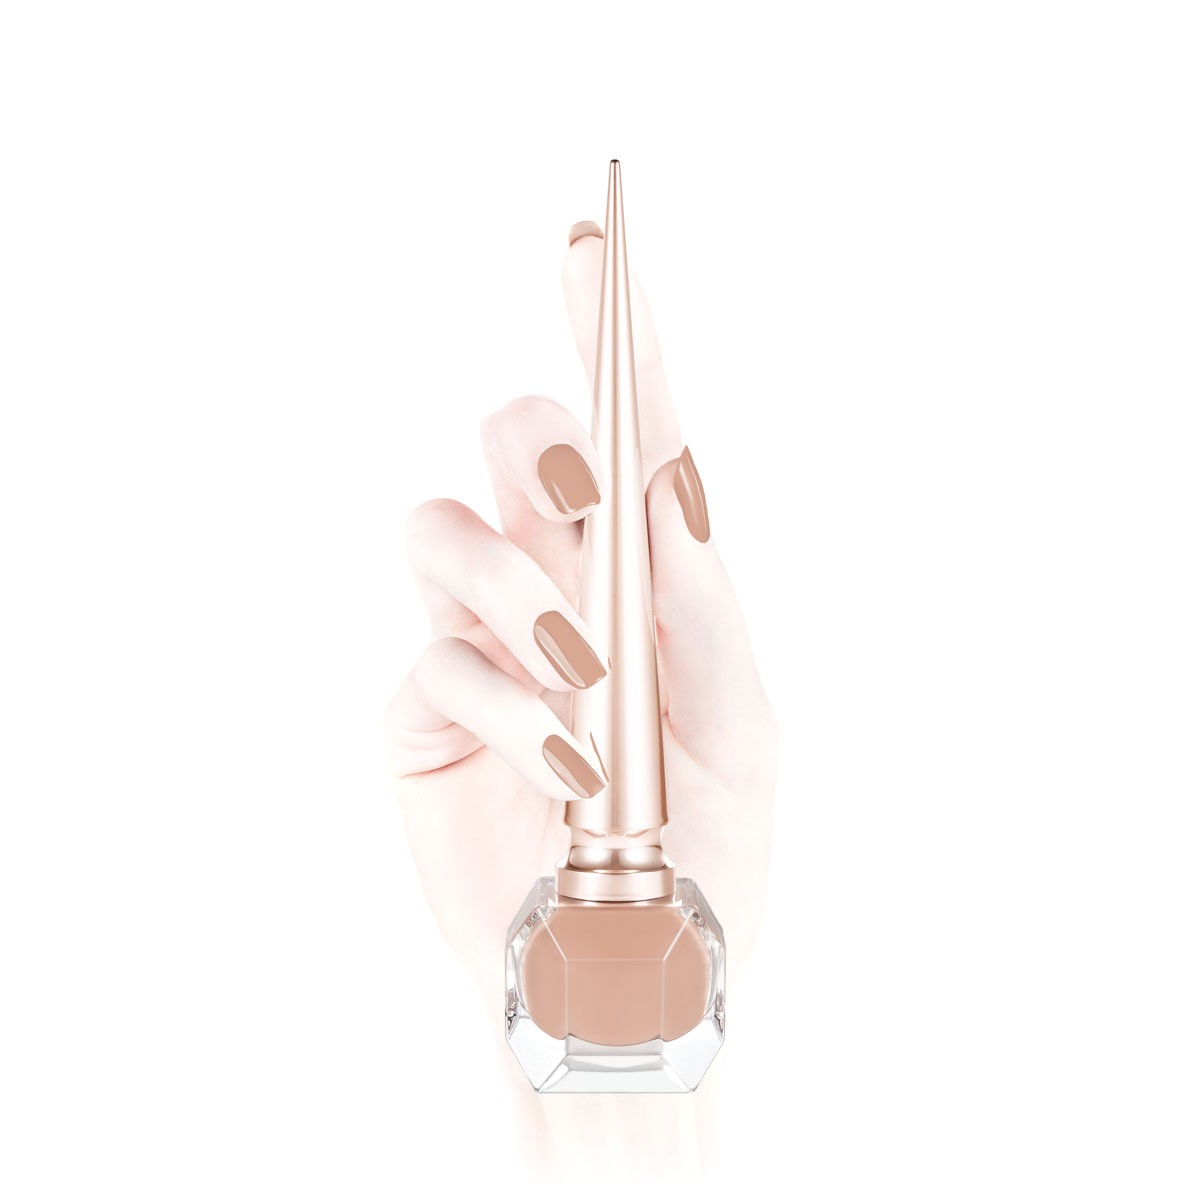 Woman Beauty - Tutulle - Christian Louboutin